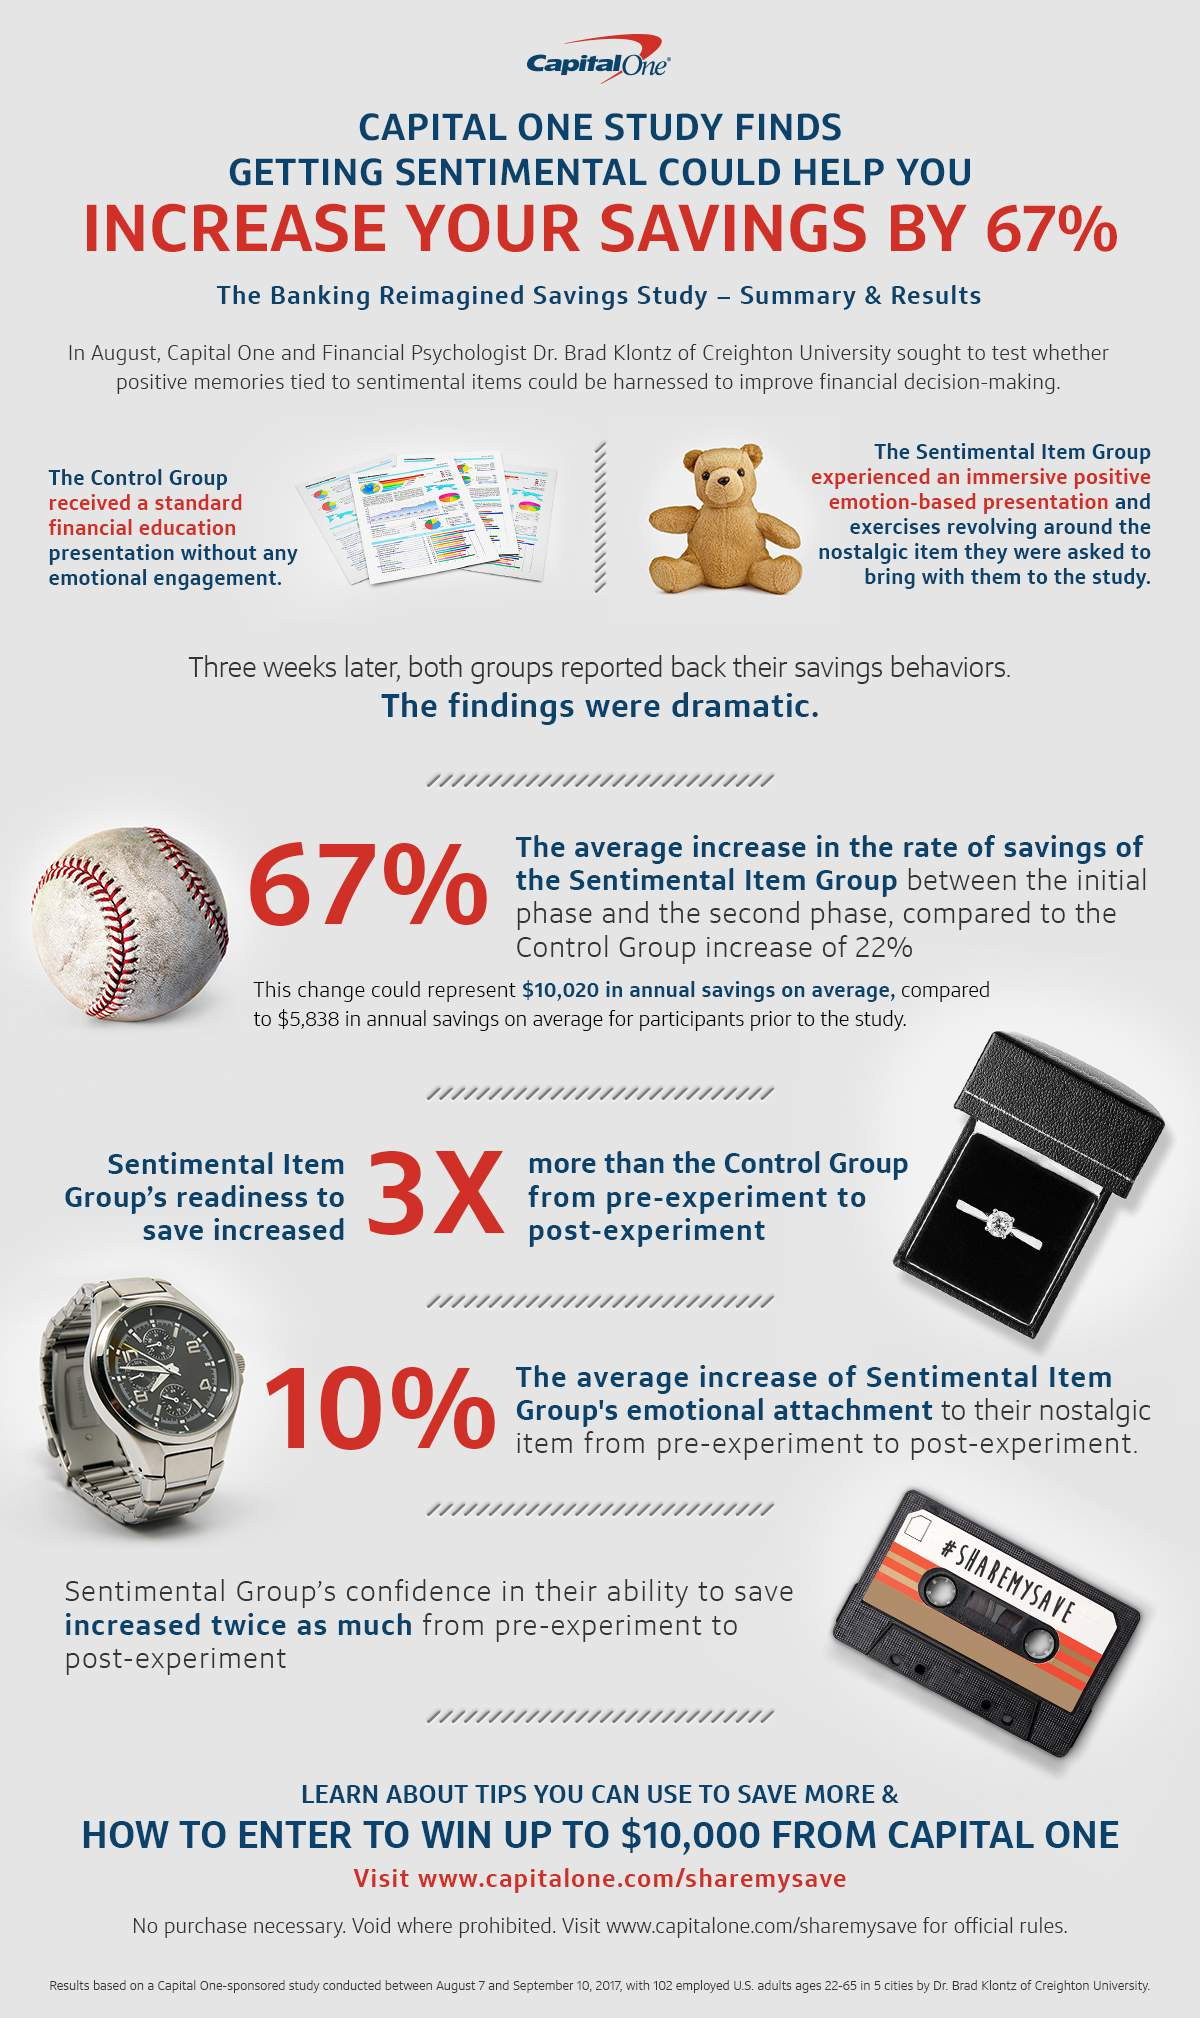 Capital One Banking Reimagined Savings Study- How to save better